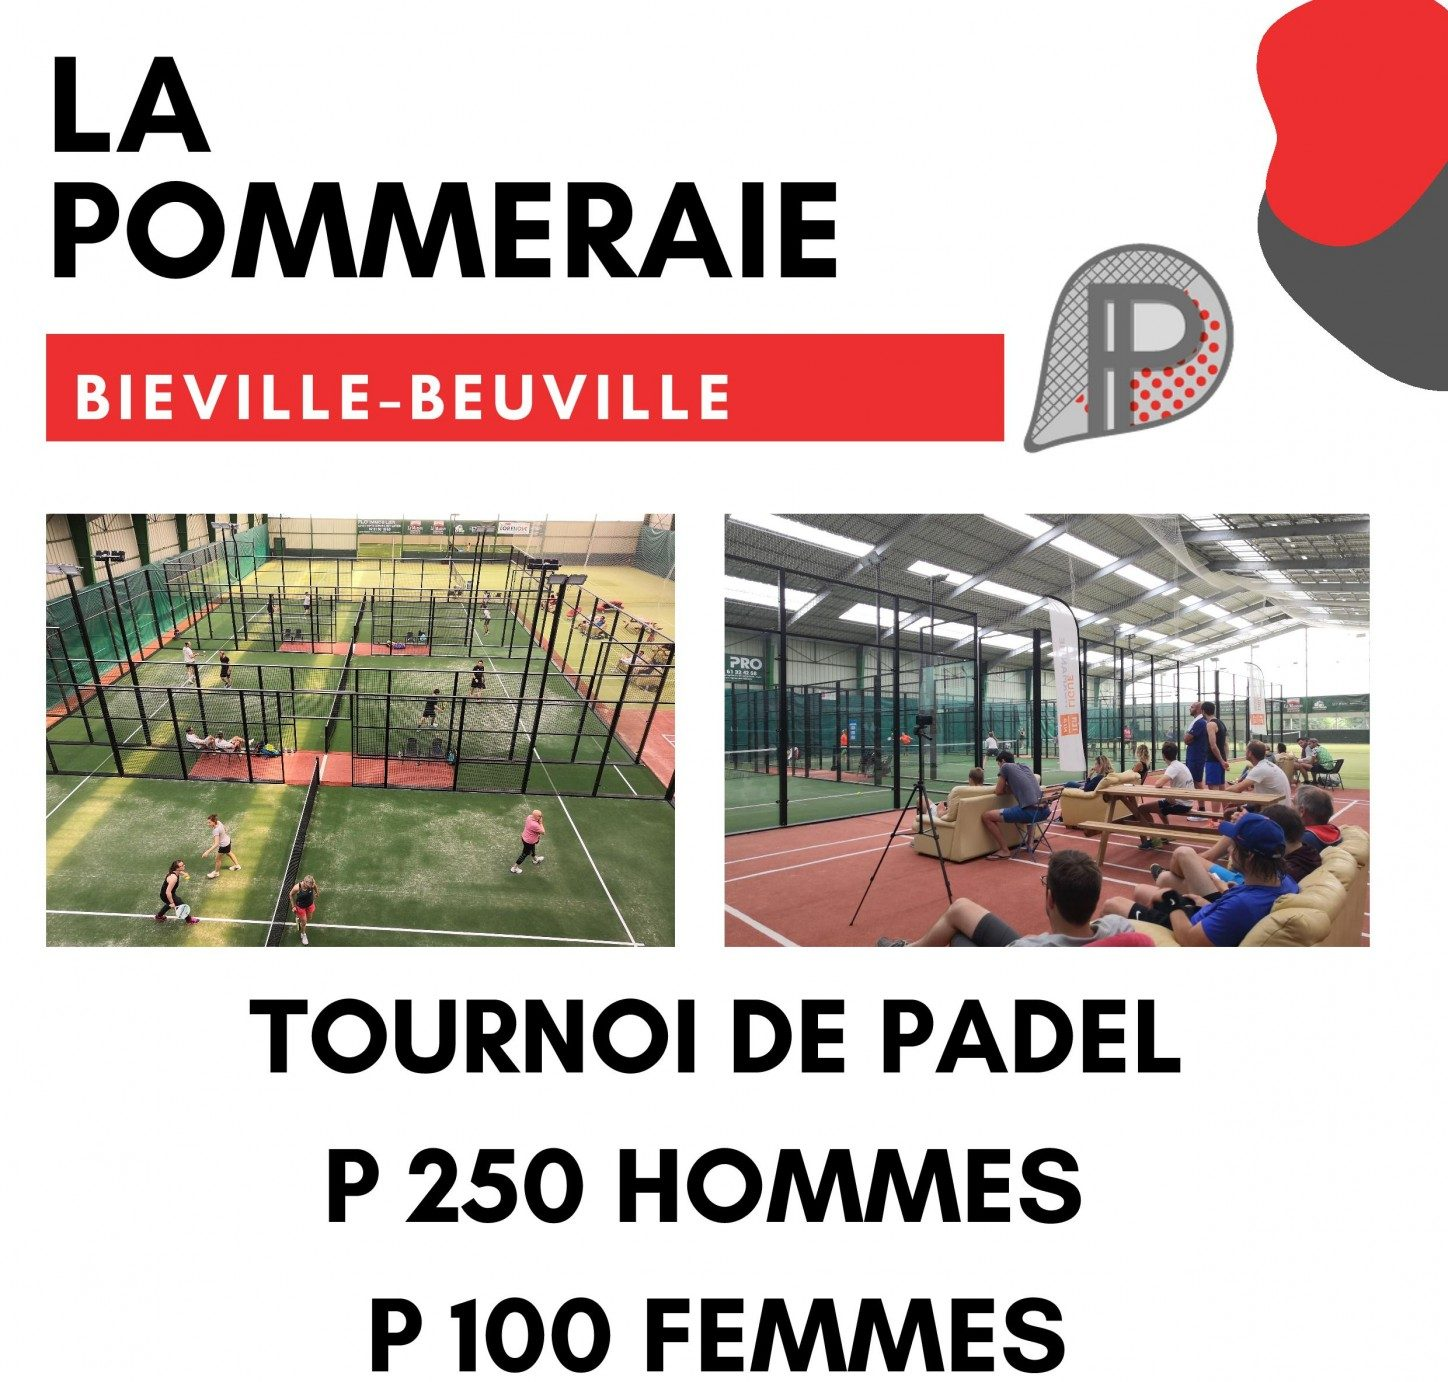 La Pommeraie and its P250 this weekend